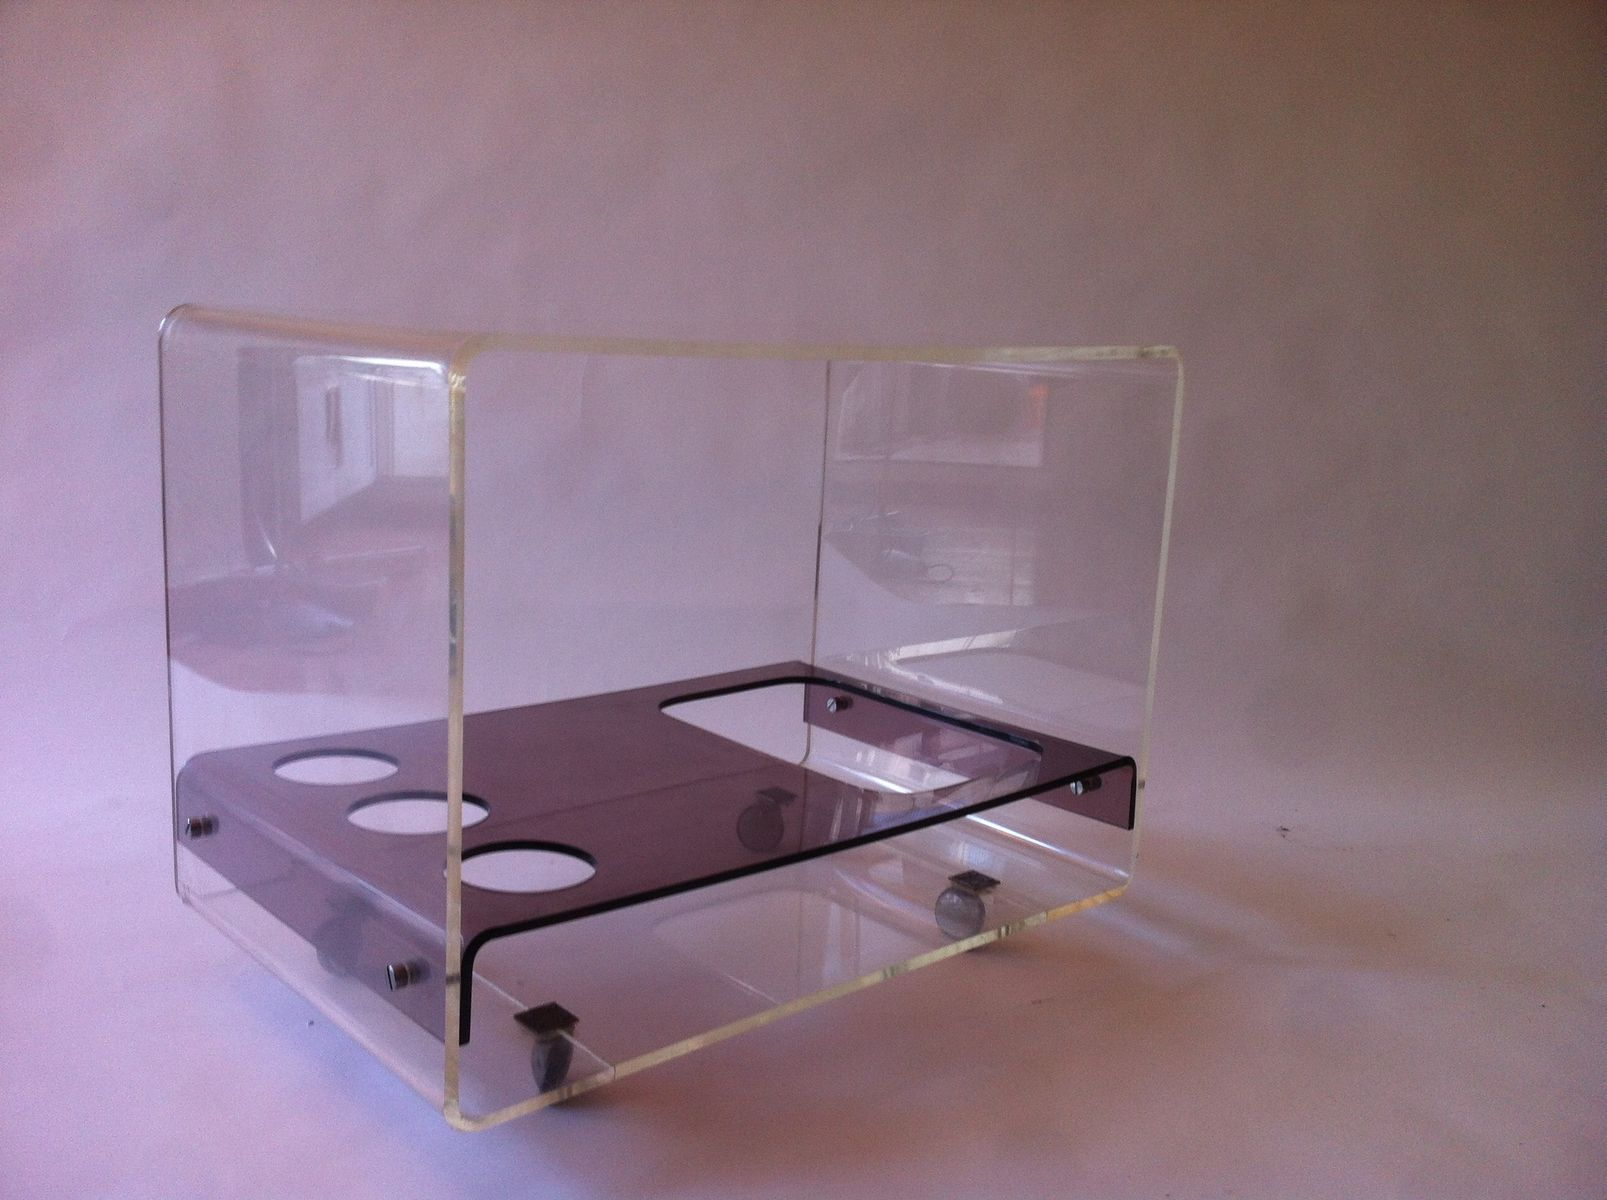 spanischer vintage plexiglas barwagen 1960er bei pamono. Black Bedroom Furniture Sets. Home Design Ideas